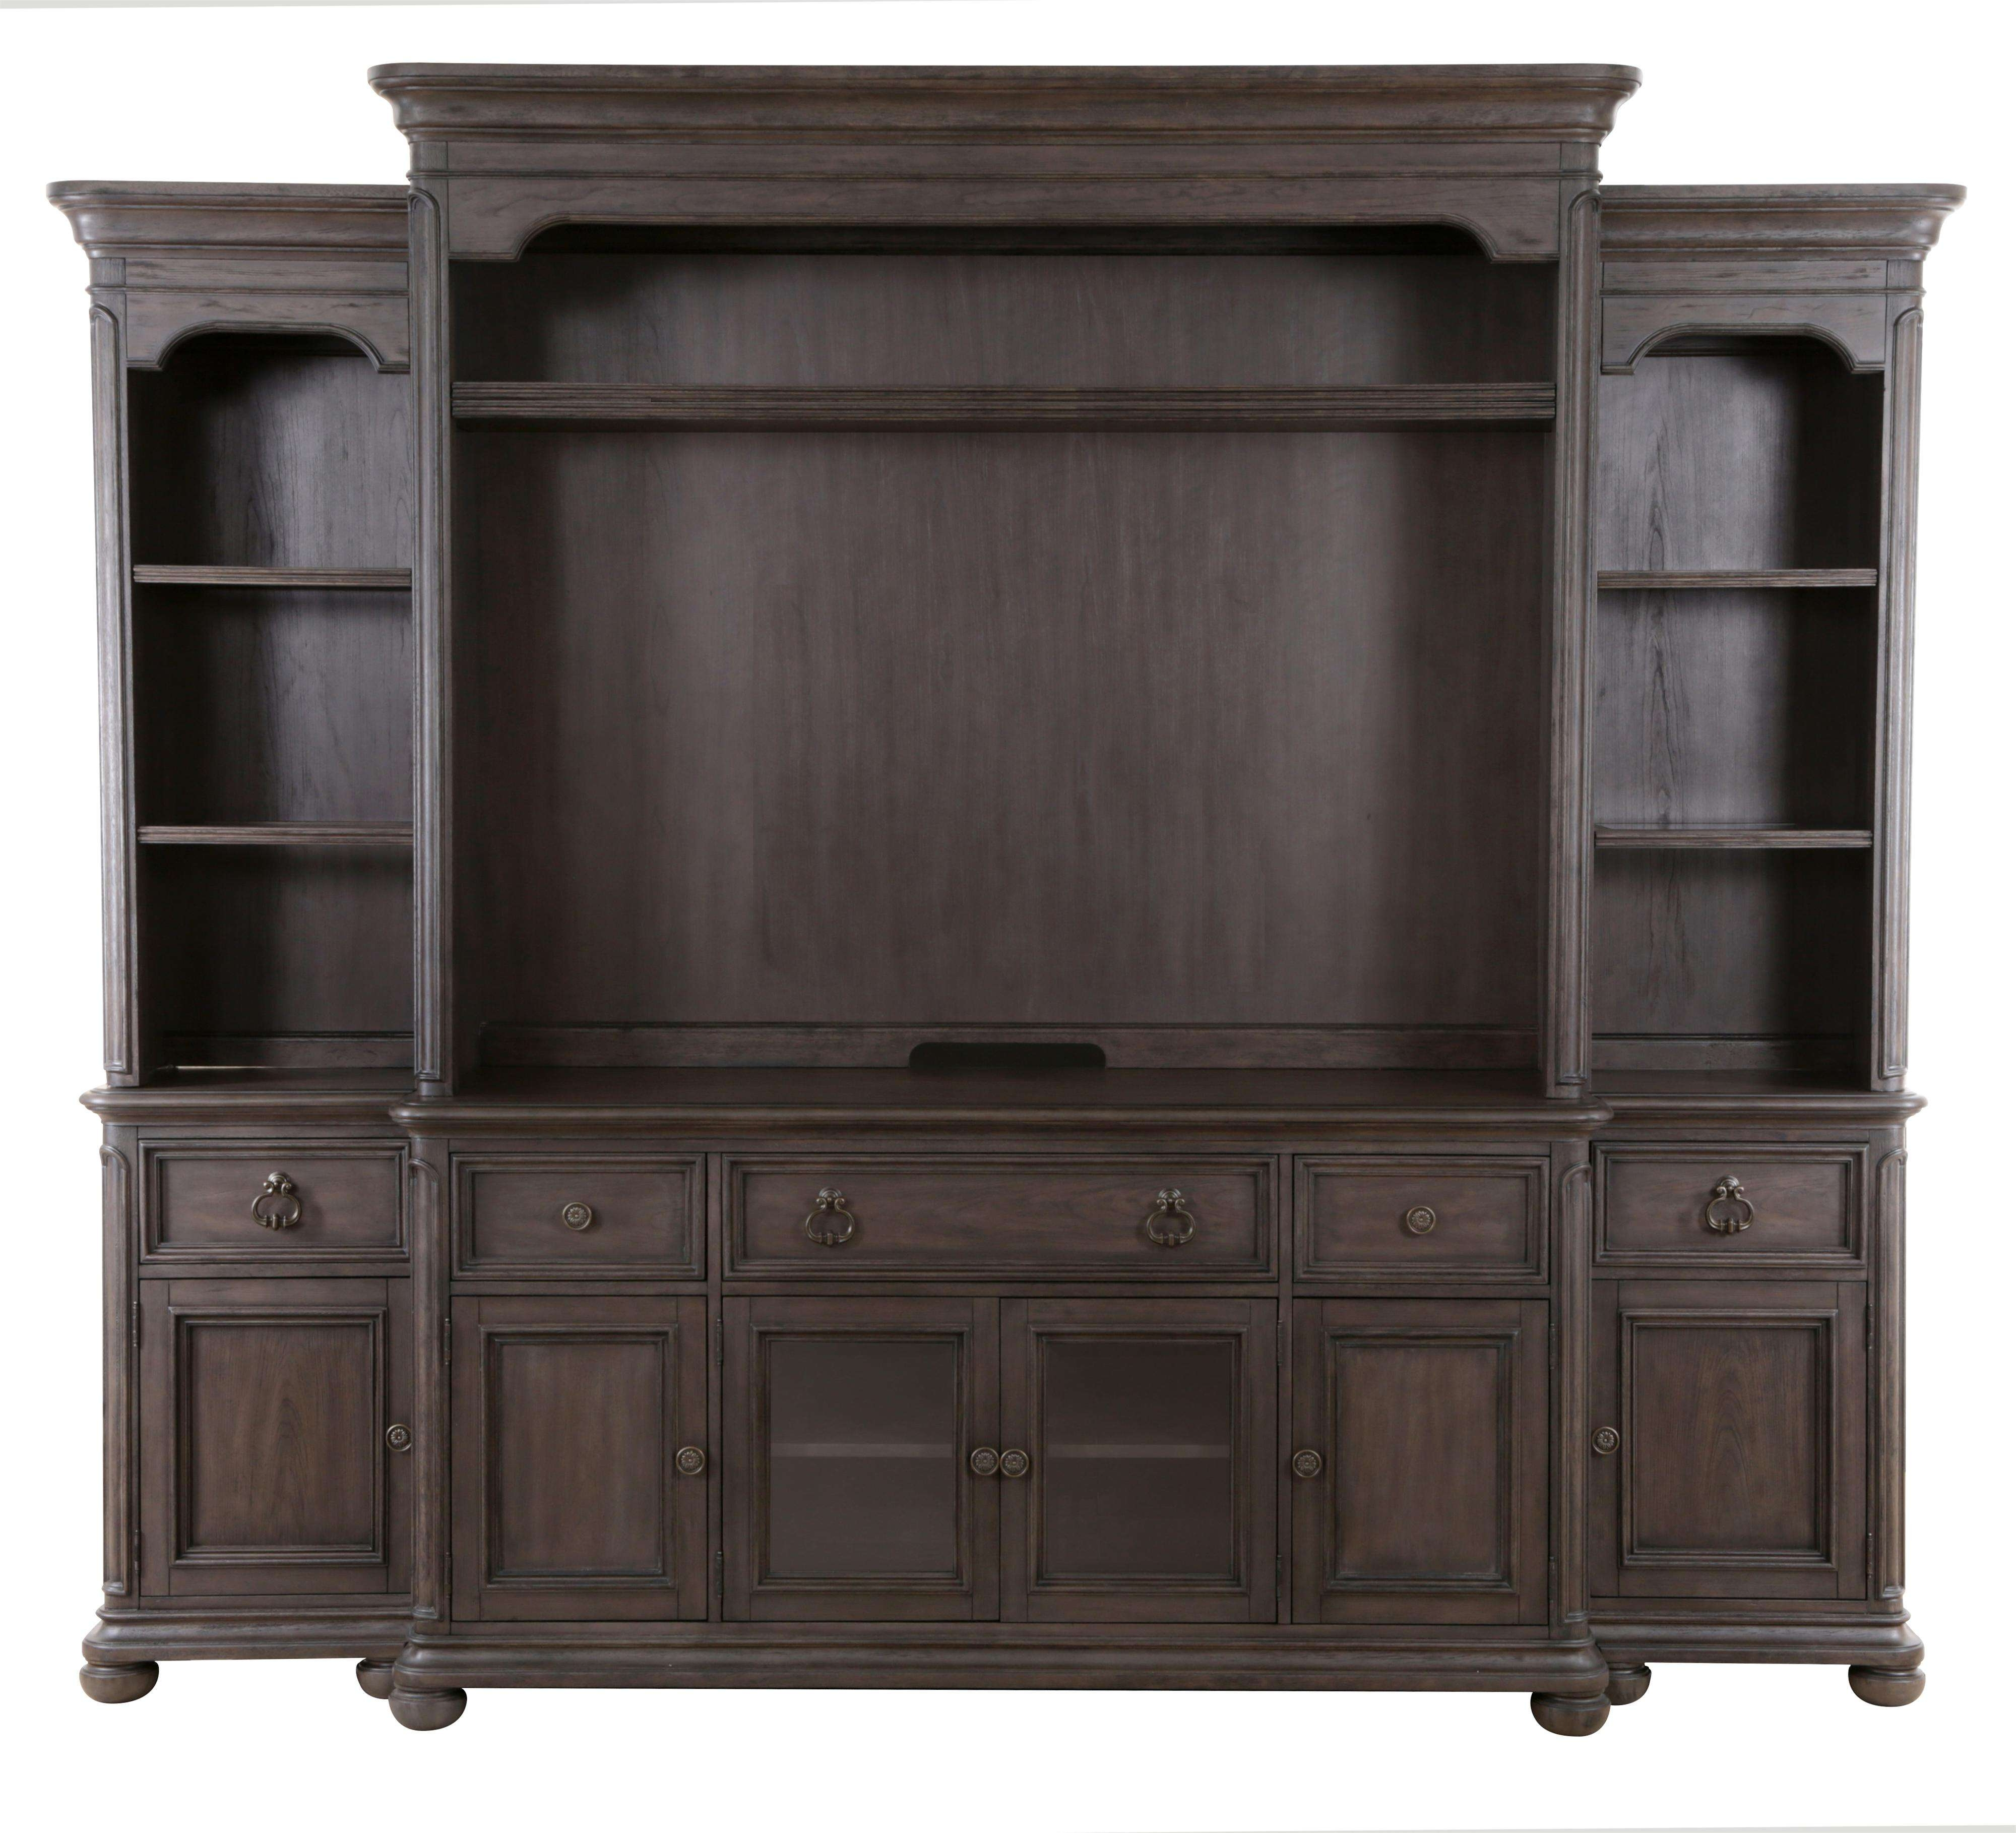 Large Dark Brown Wooden Tv Cabinet With Storage And Shelves Within Traditional Tv Cabinets (View 18 of 20)